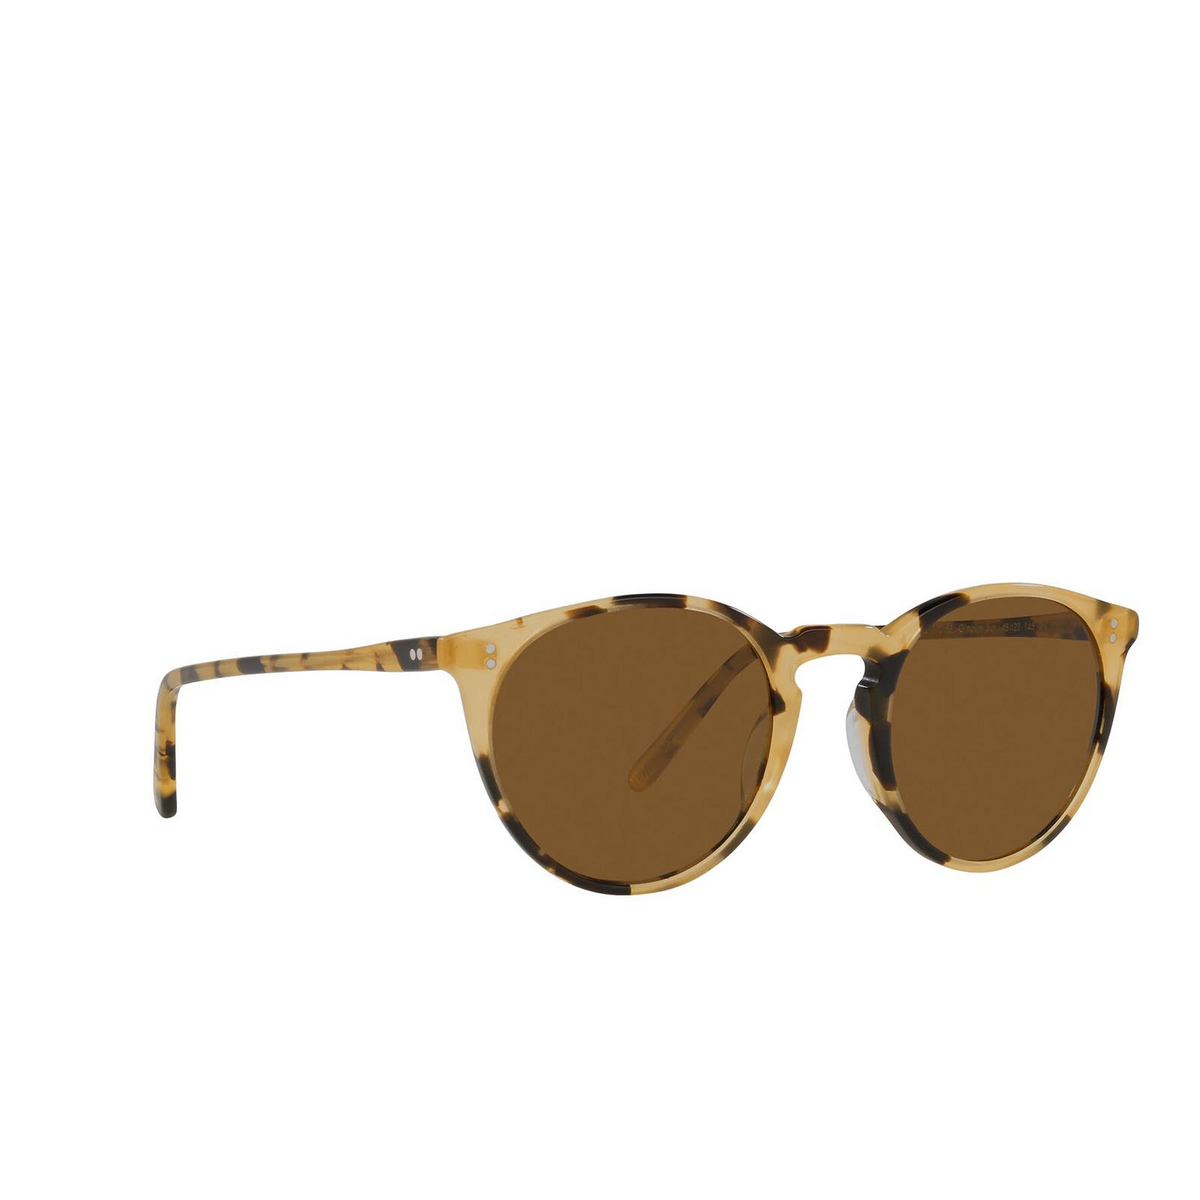 Oliver Peoples® Round Sunglasses: O'malley Sun OV5183S color Ytb 170153 - three-quarters view.